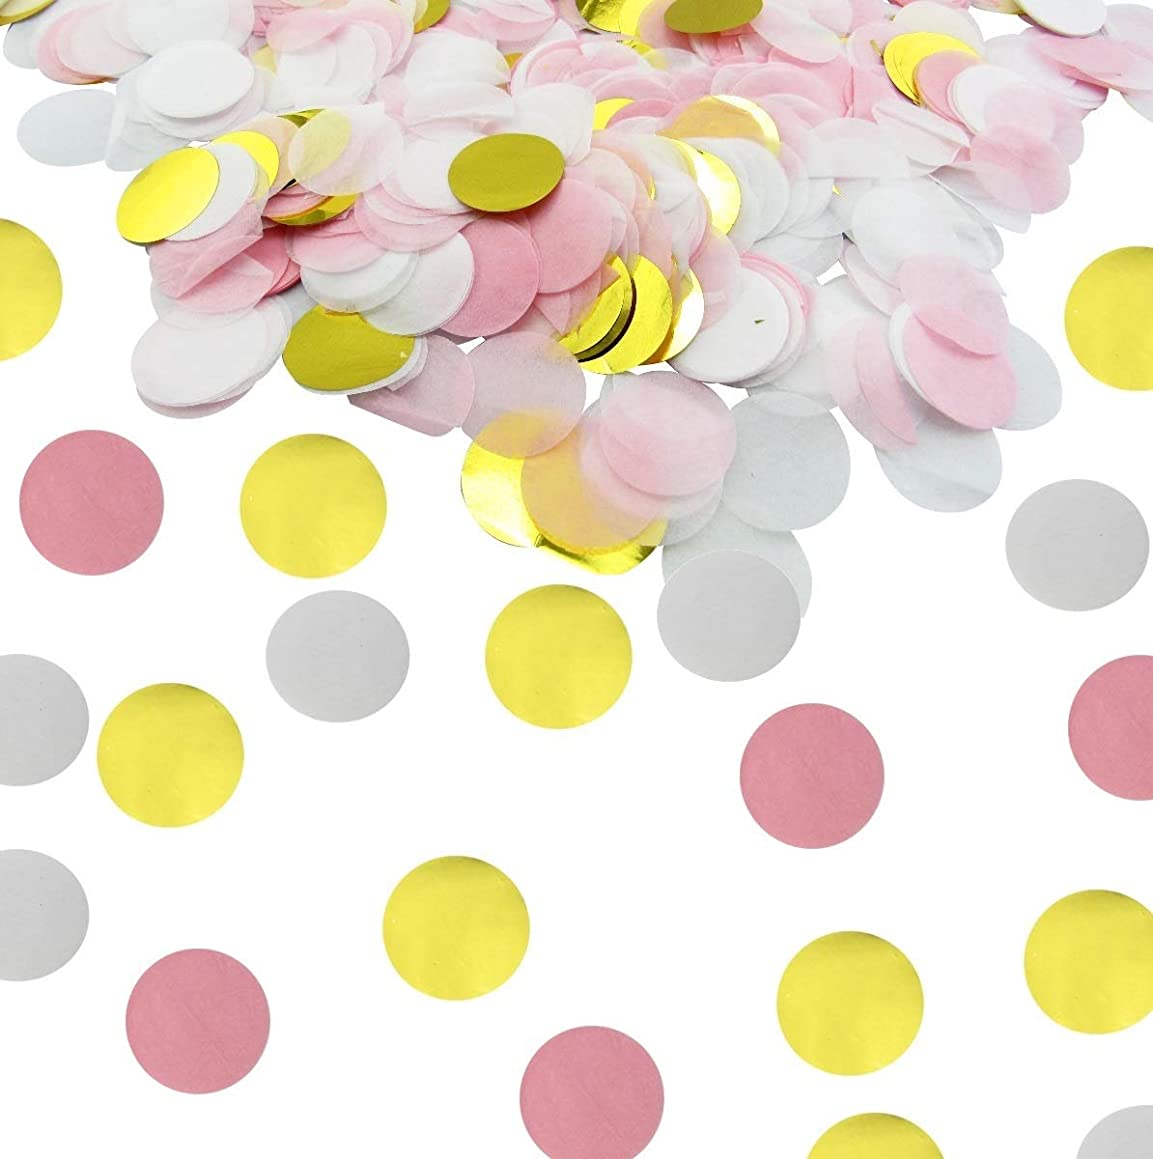 JPACO Circle Confetti - (10,000 Pieces - Pink, White, Gold) 100 Grams – 1 inch Round Confetti for Wedding, Gender Reveal, Baby & Bridal Shower, Event & Birthday Party!